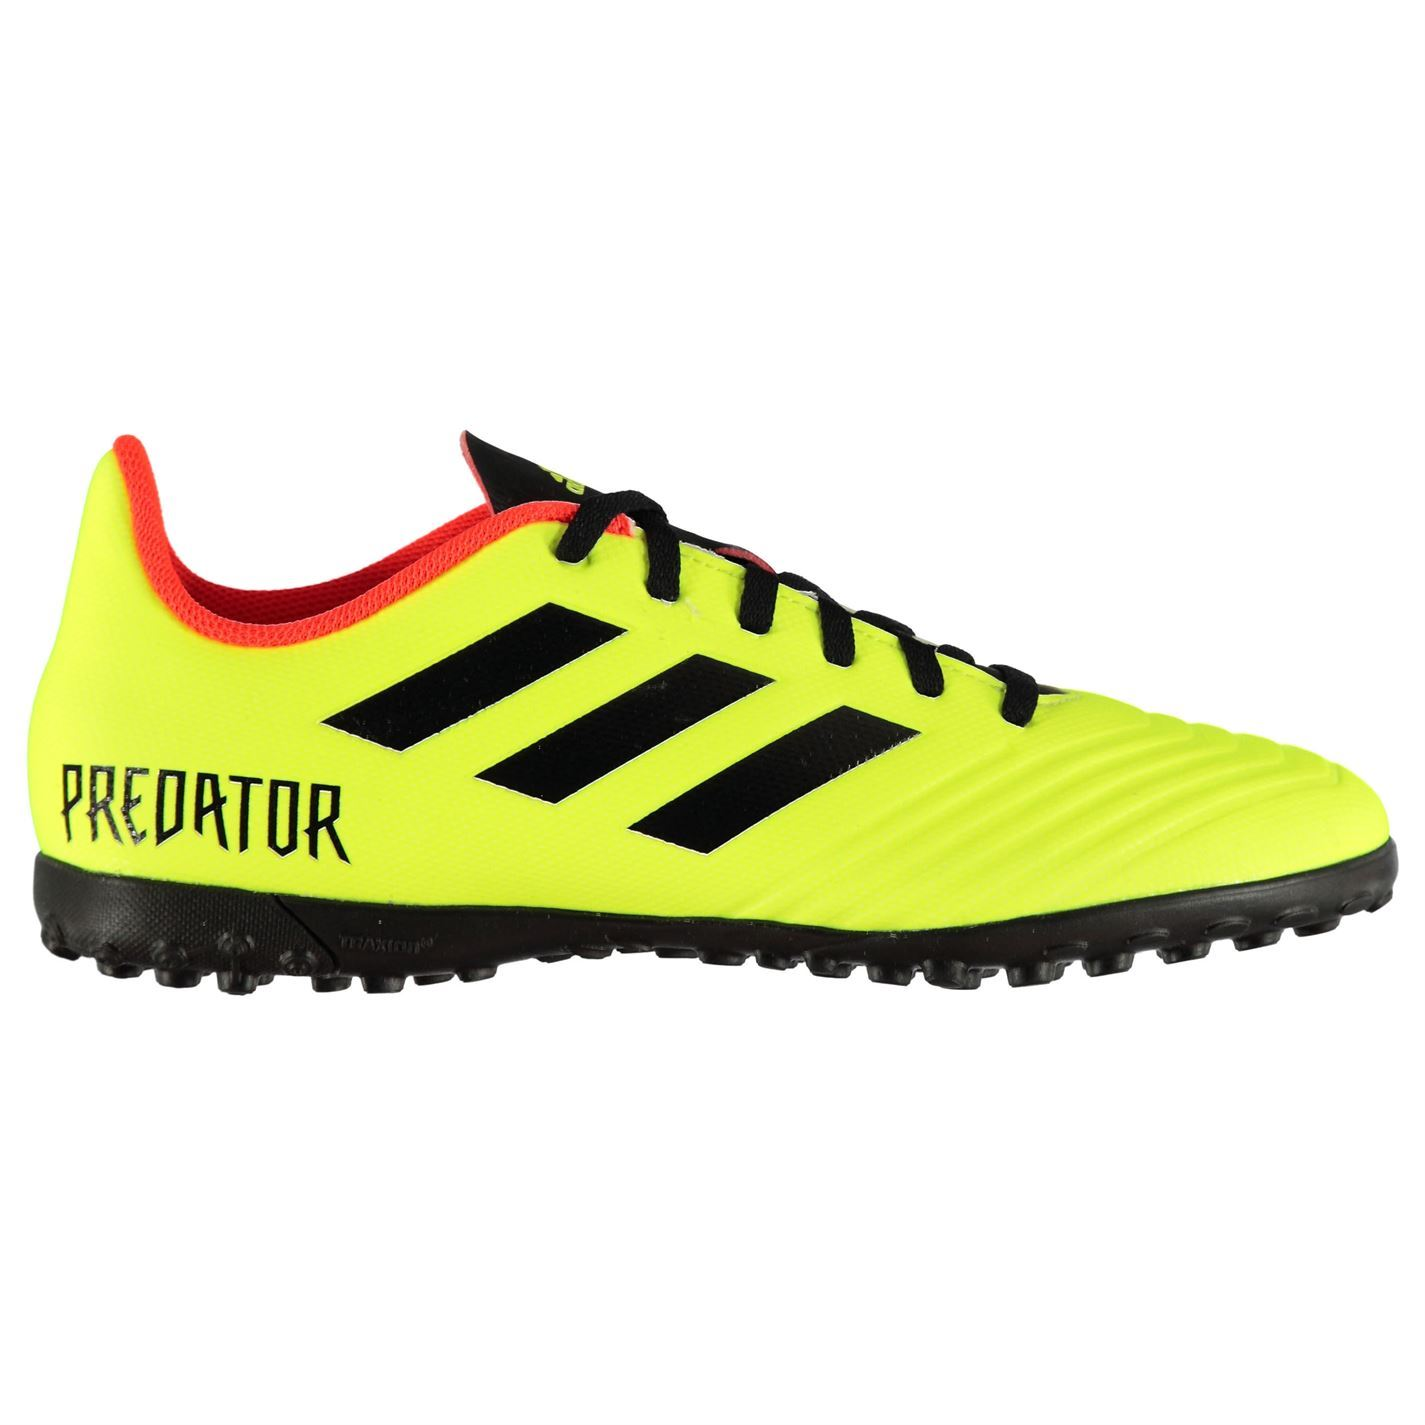 adidas Mens Predator Tango 18.4 Astro Turf Trainers Football Boots Lace Up 9253b3d19277